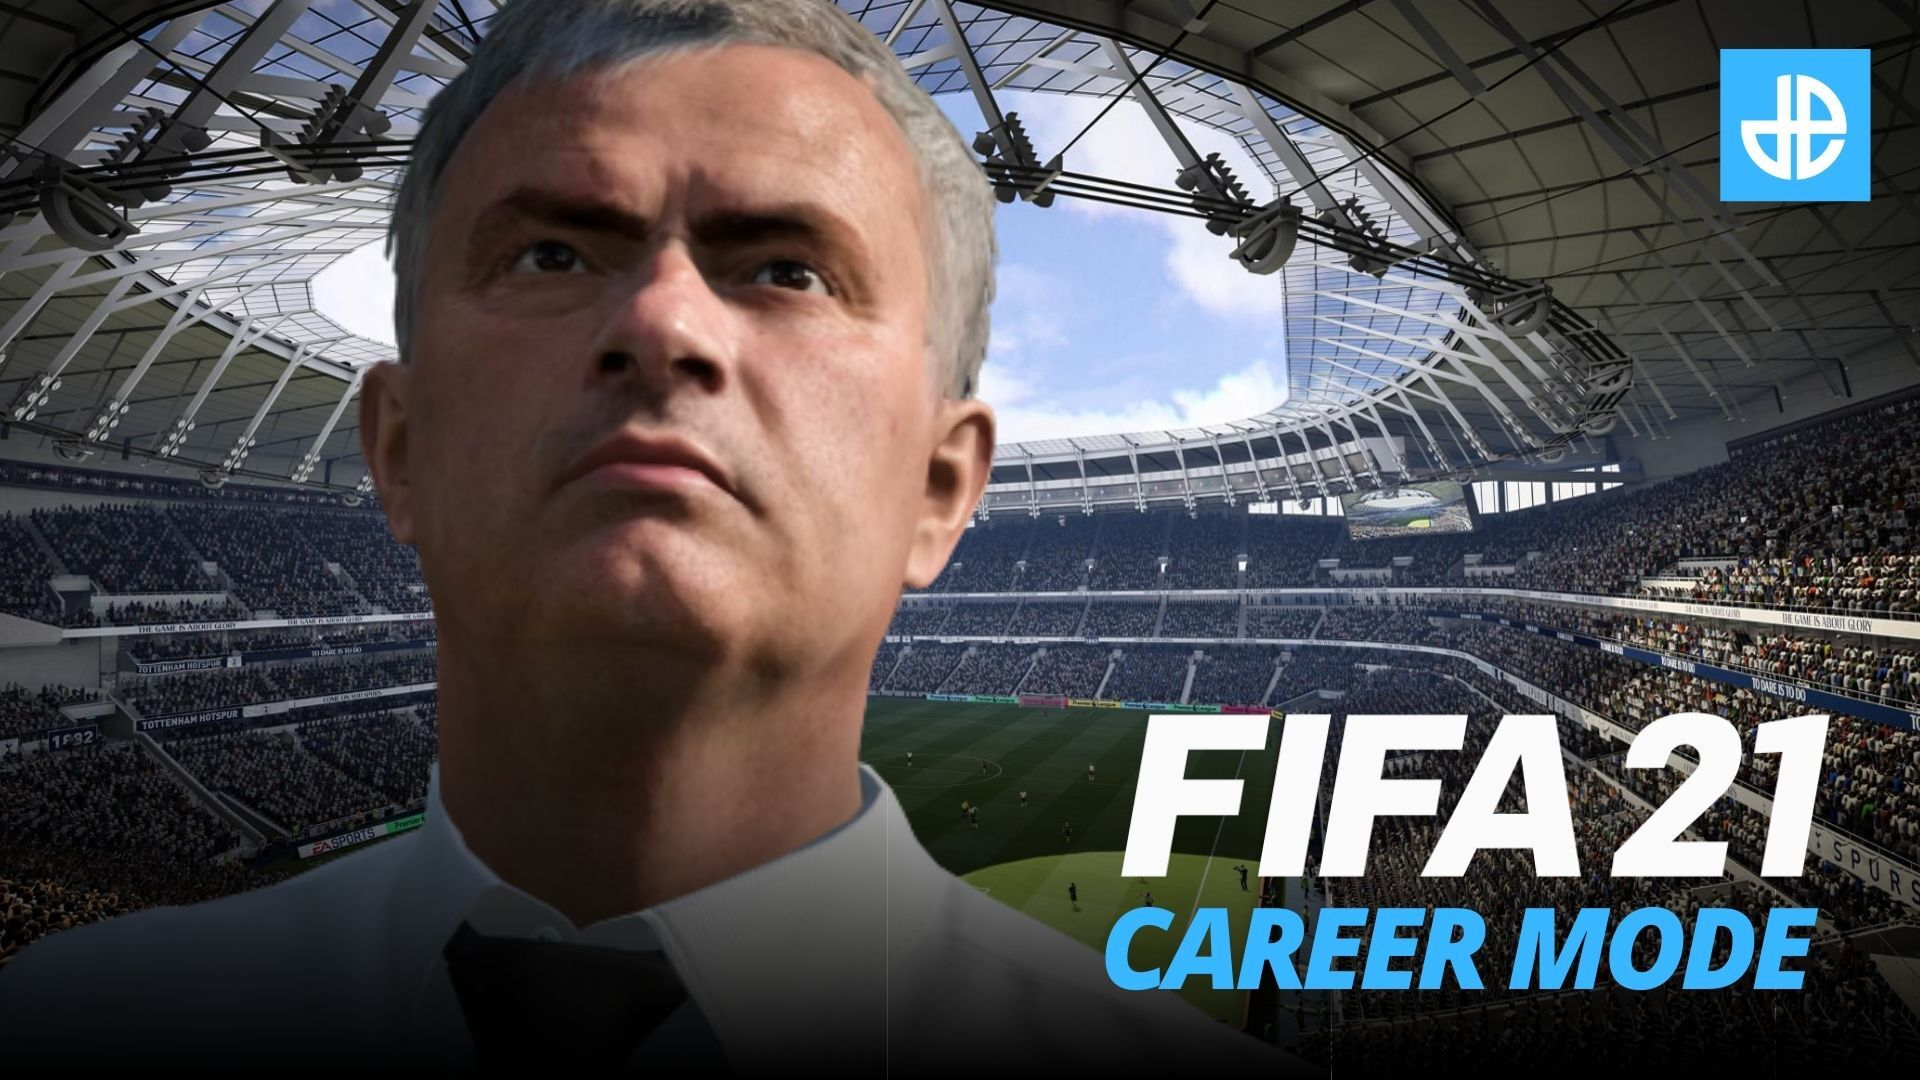 Mourinho on FIFA 21 Background